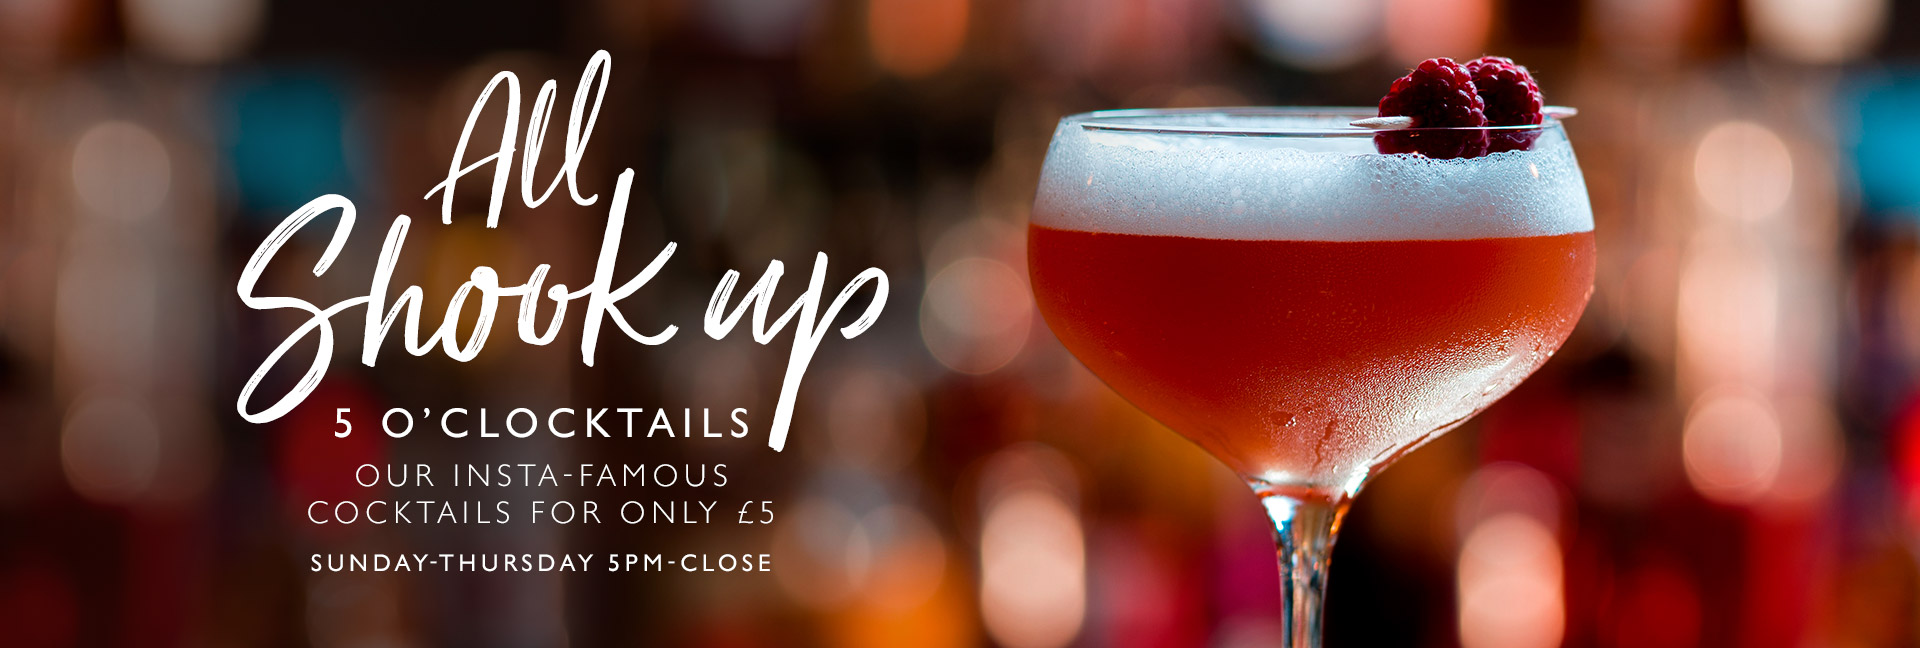 5 O'clocktails at All Bar One Millennium Square Leeds - Book now